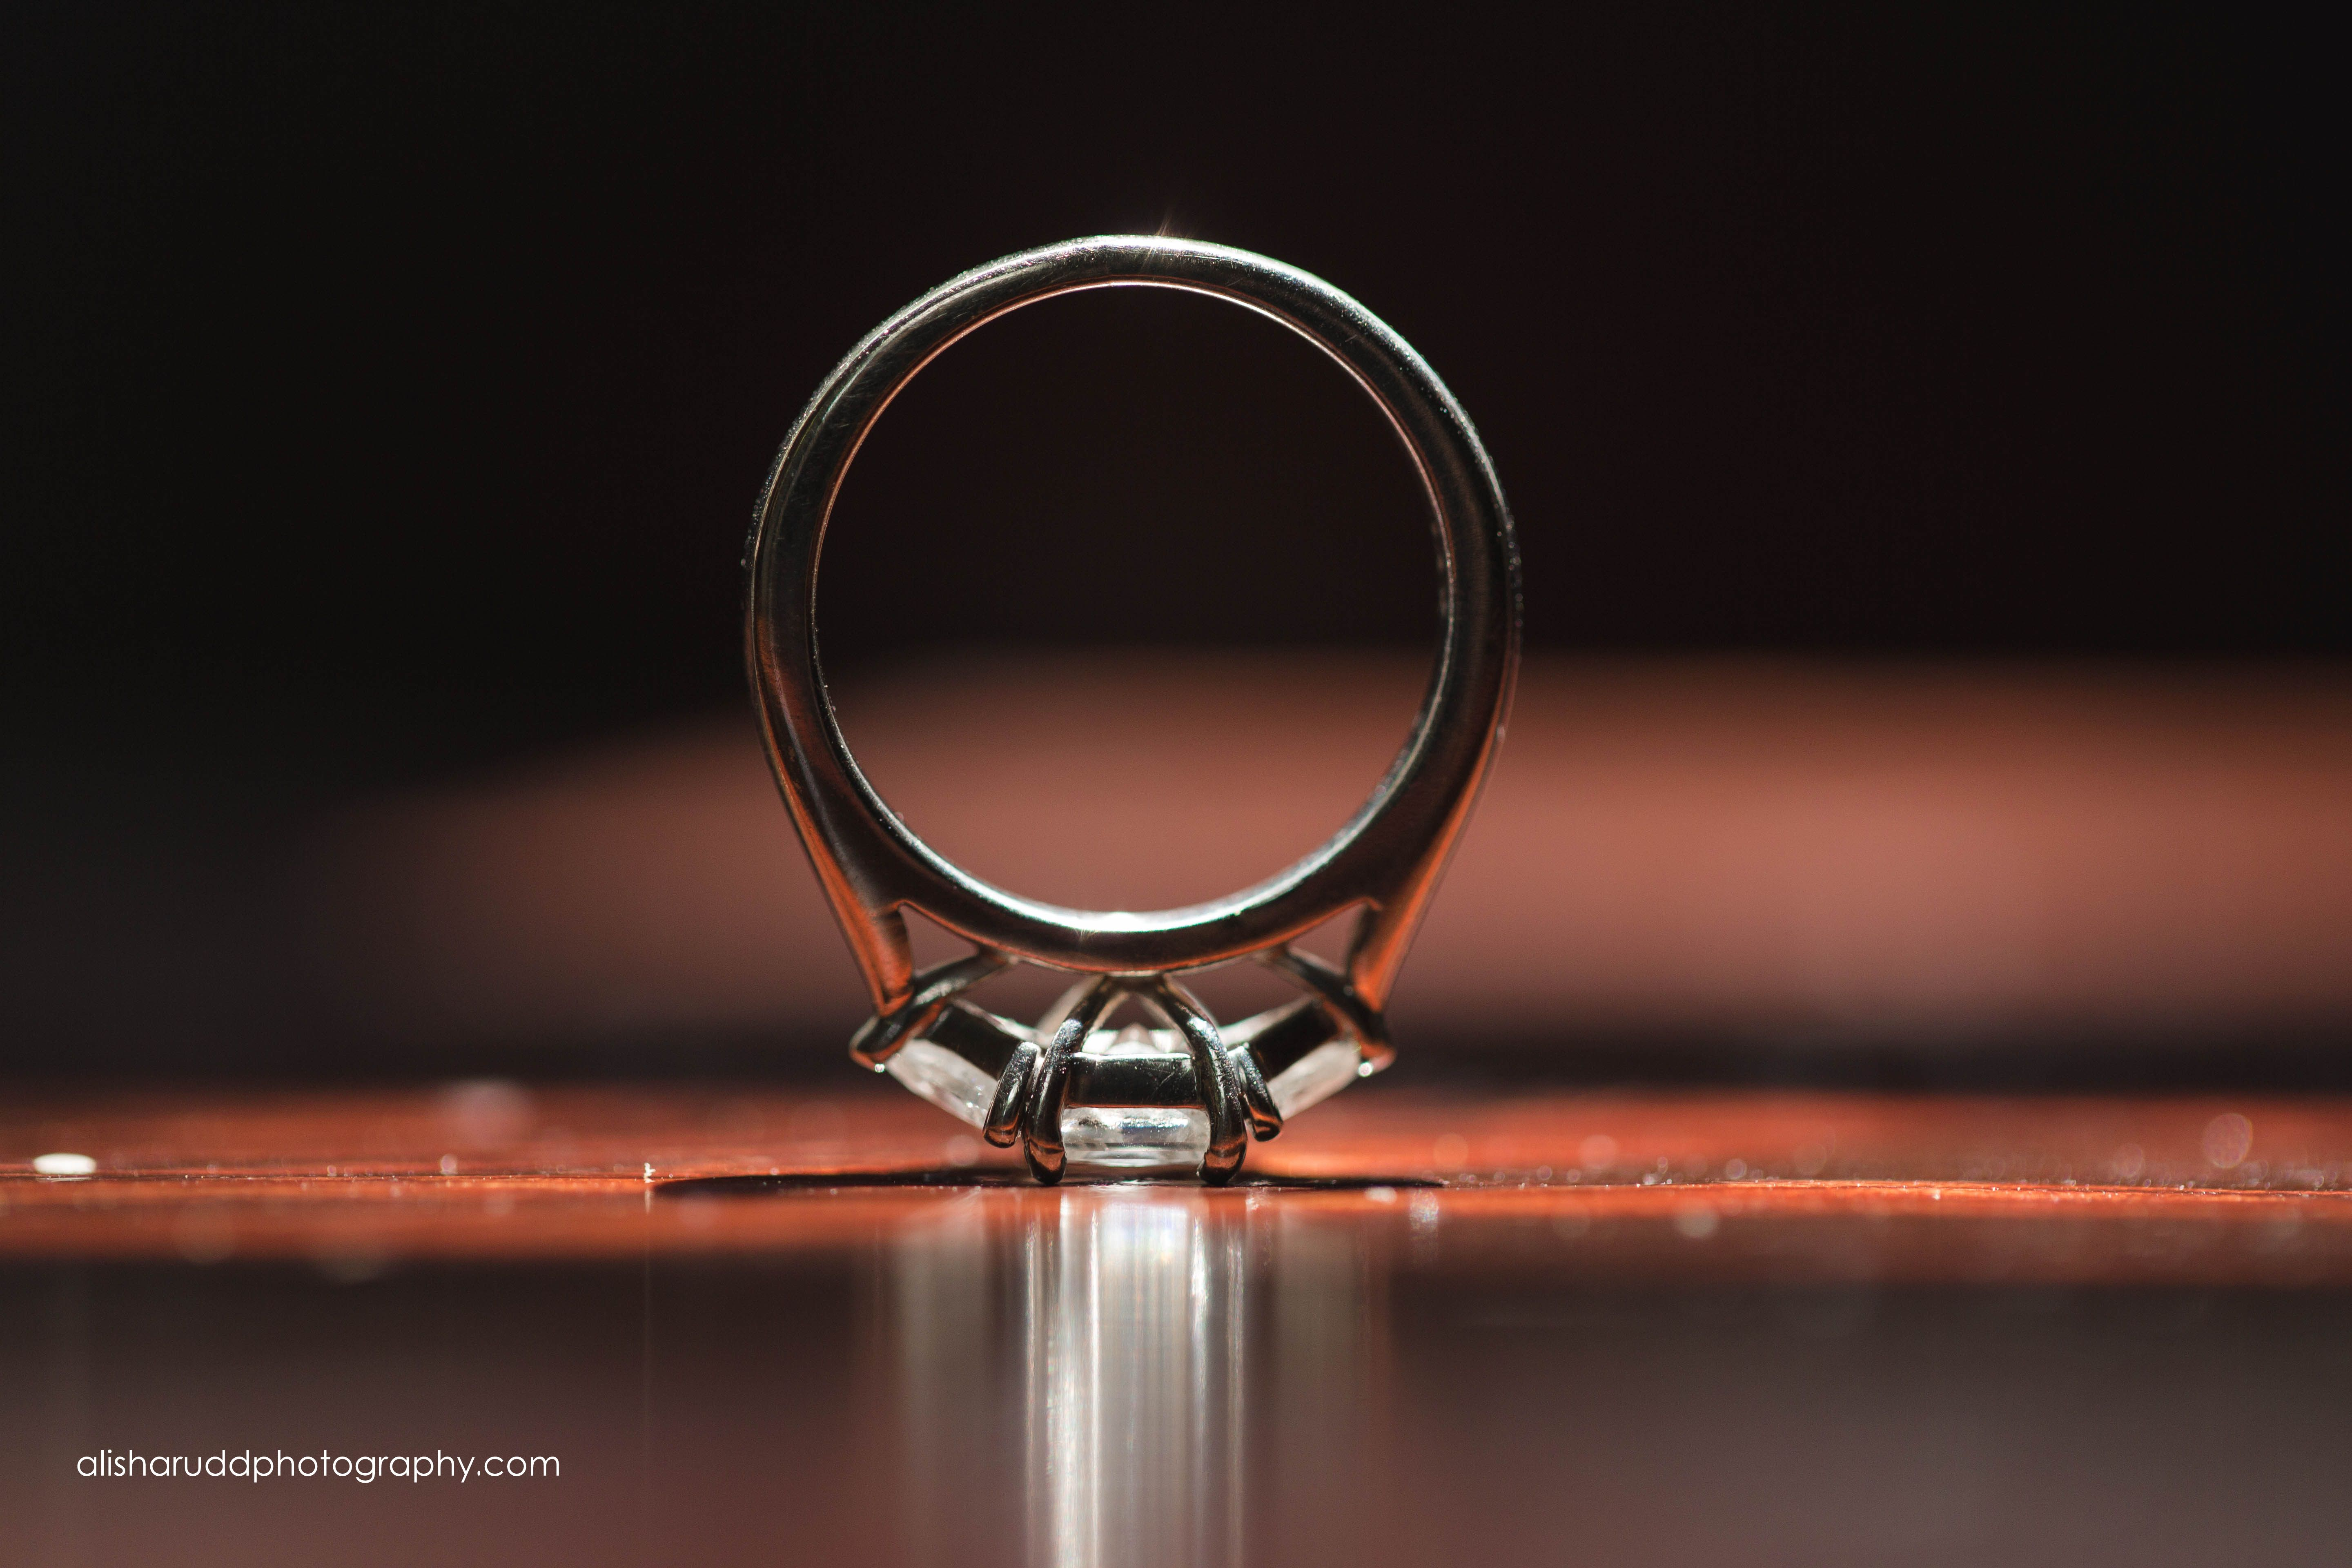 Diamond Ring - Alisha Rudd Photography - www.alisharuddphotography.com - #bling #ice #diamond #diamondring #weddingring #macro #macroringshot